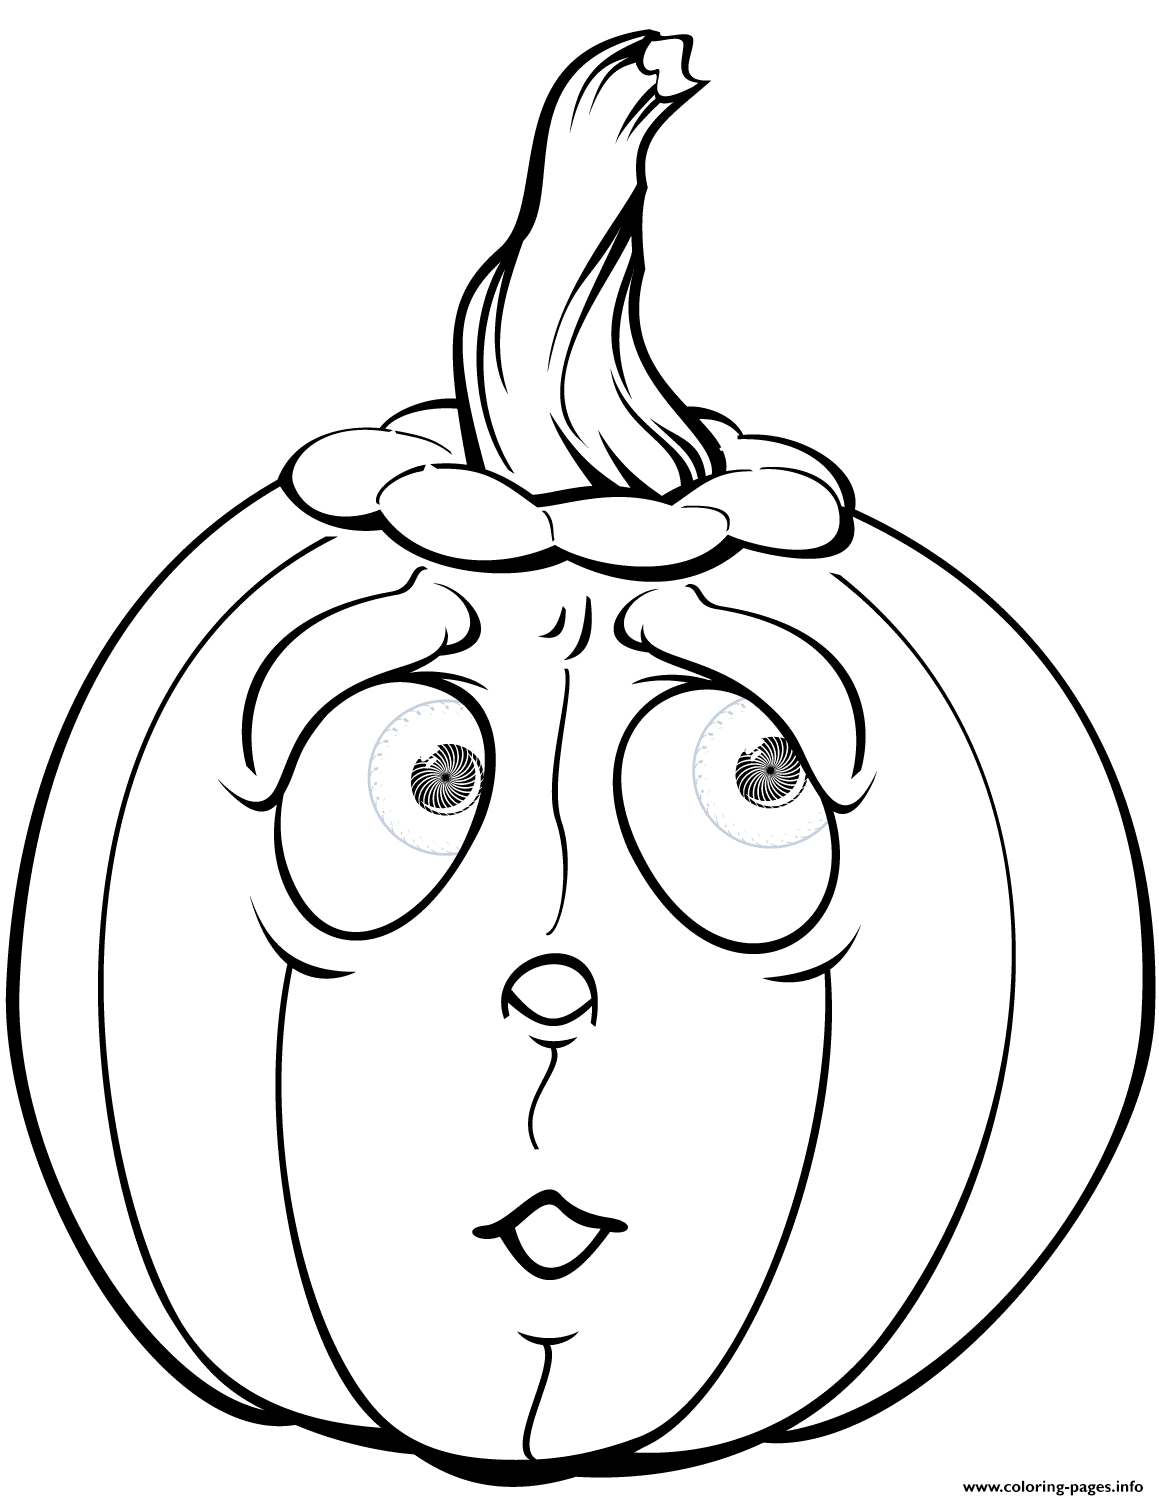 halloween pictures of pumpkins to color coloring ville pumpkins pictures to halloween color of